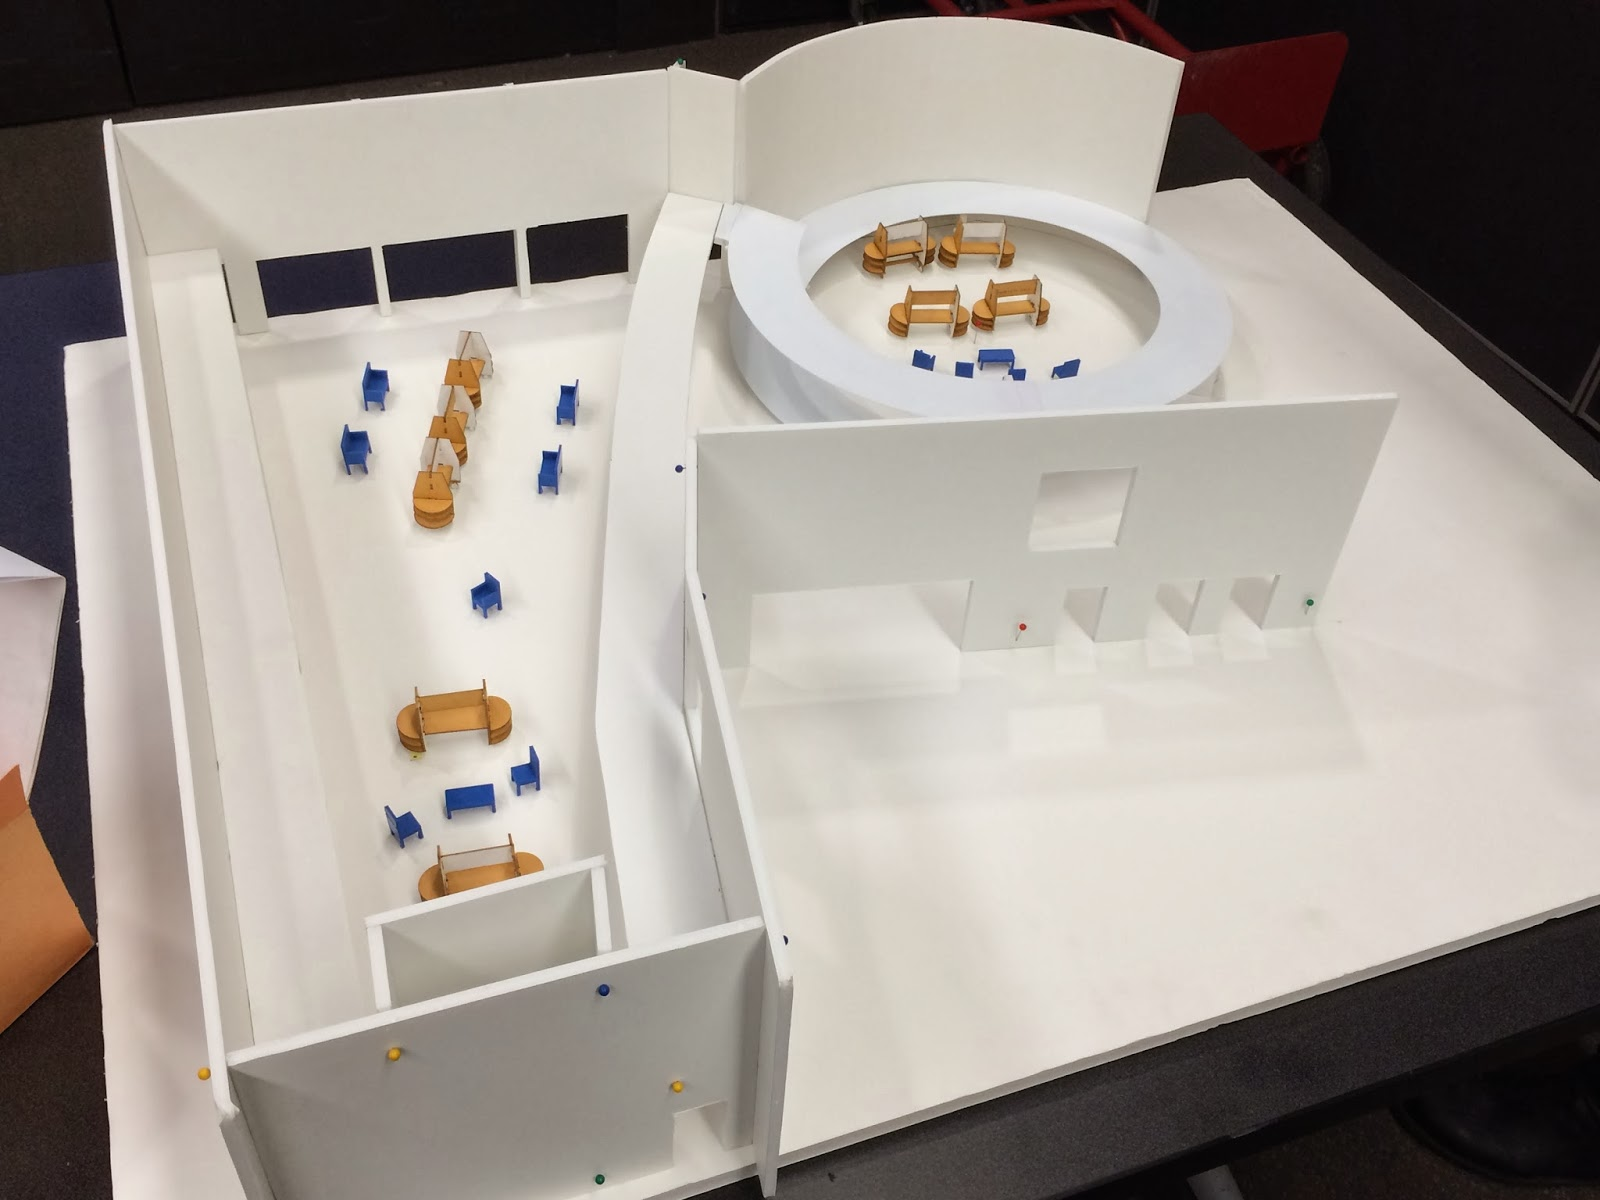 A top frontal view of the white building model shows the small exhibit displays and chairs in placeand how the layout would look.